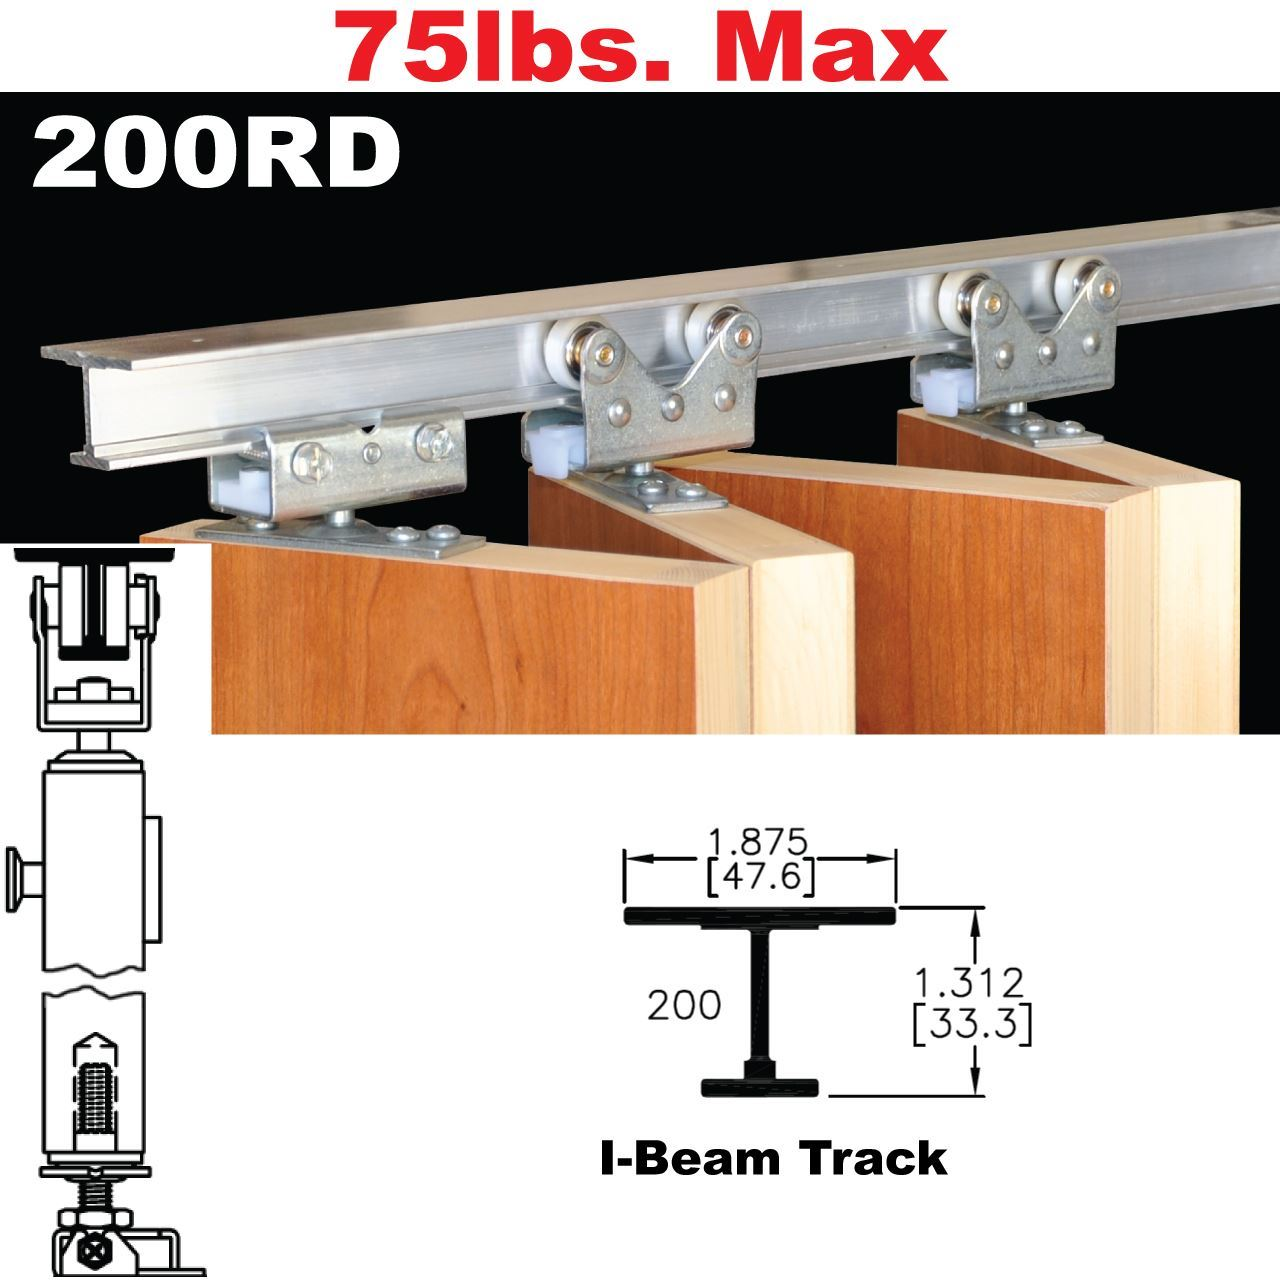 Picture of 200rd multi fold door hardware